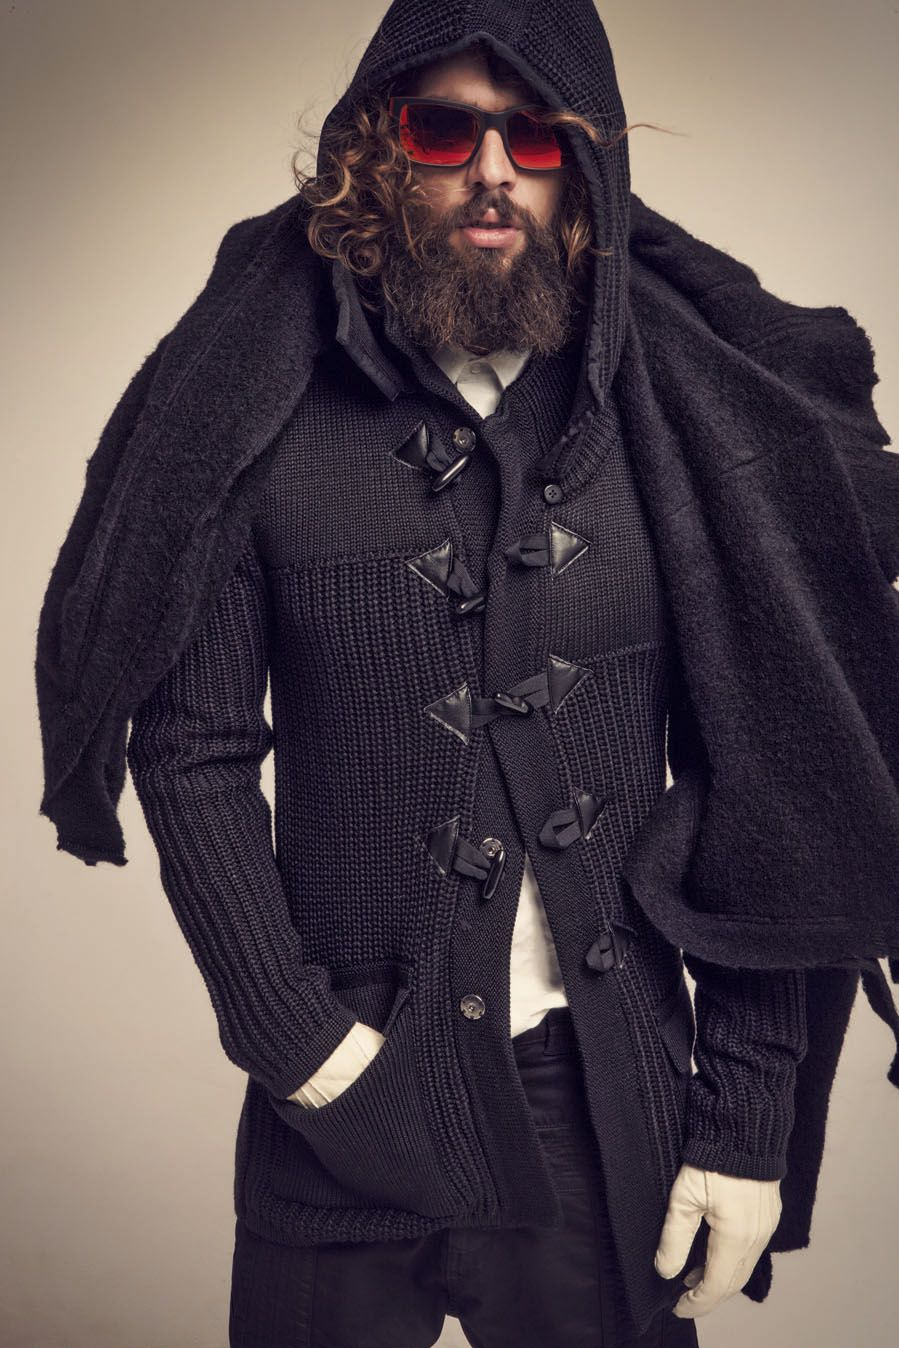 Tailor Made Aw12 13 Lookbook Mens Hooded Black Knitted Toggle Detail Cardigan Stylish Men Mens Outfits Mens Fashion